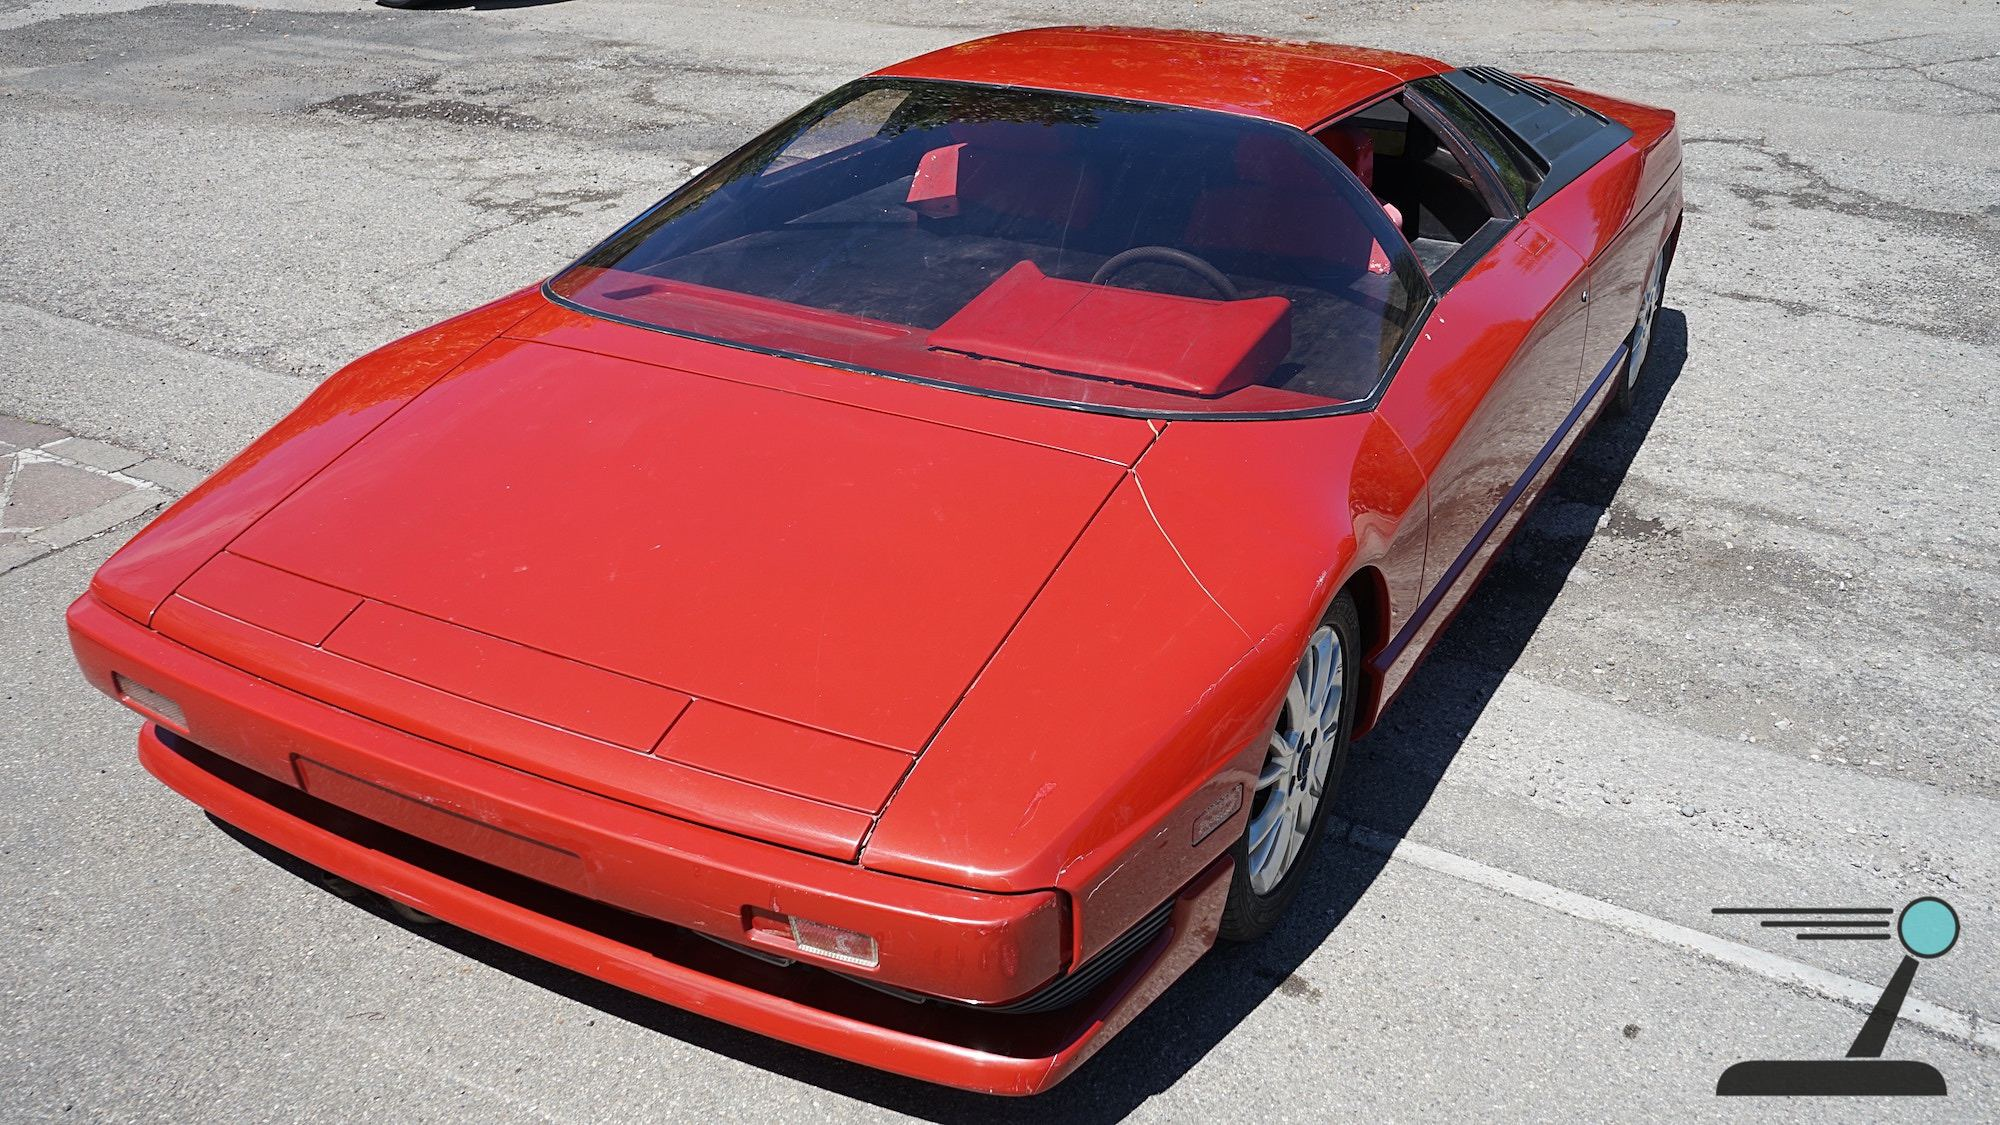 The drivetrain-less mock-up tells the story of two iconic supercars at once: the Lamborghini Diablo and the Cizeta V16T.